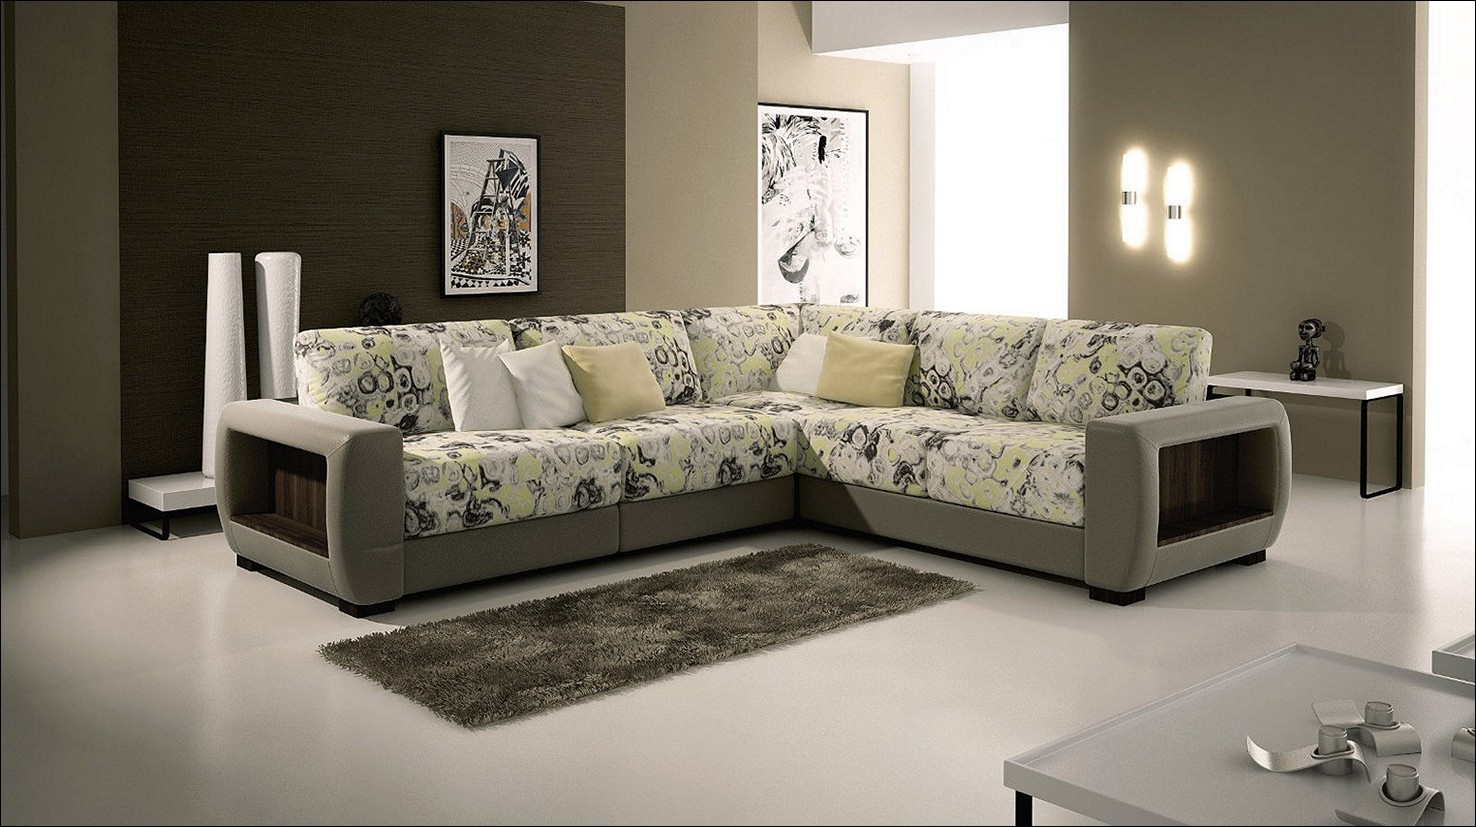 Wallpapers for living room design ideas in uk - Family room wall decor ideas ...